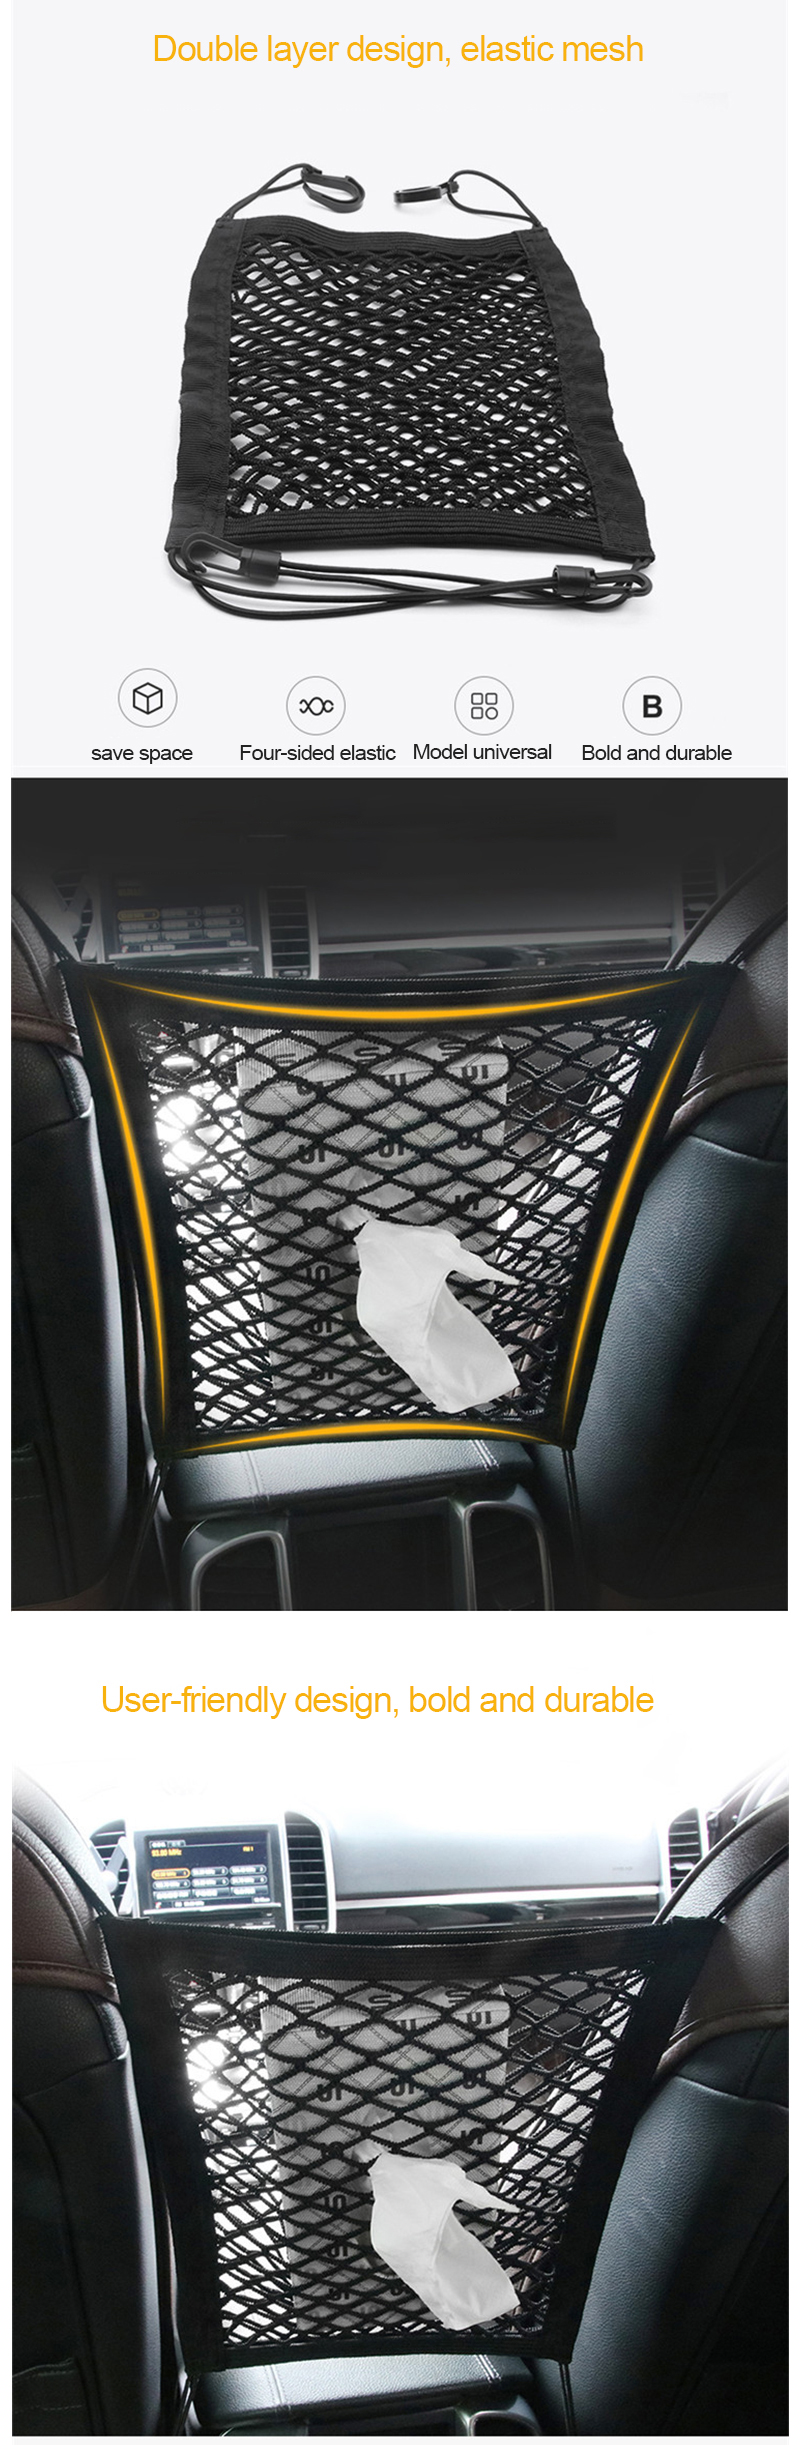 pc2 Car Organizer Storage Net For Cars Nylon Mesh Bag Car Seat Holder Automobile Pocket Stowing Tidying Auto Interior Accessoriesq